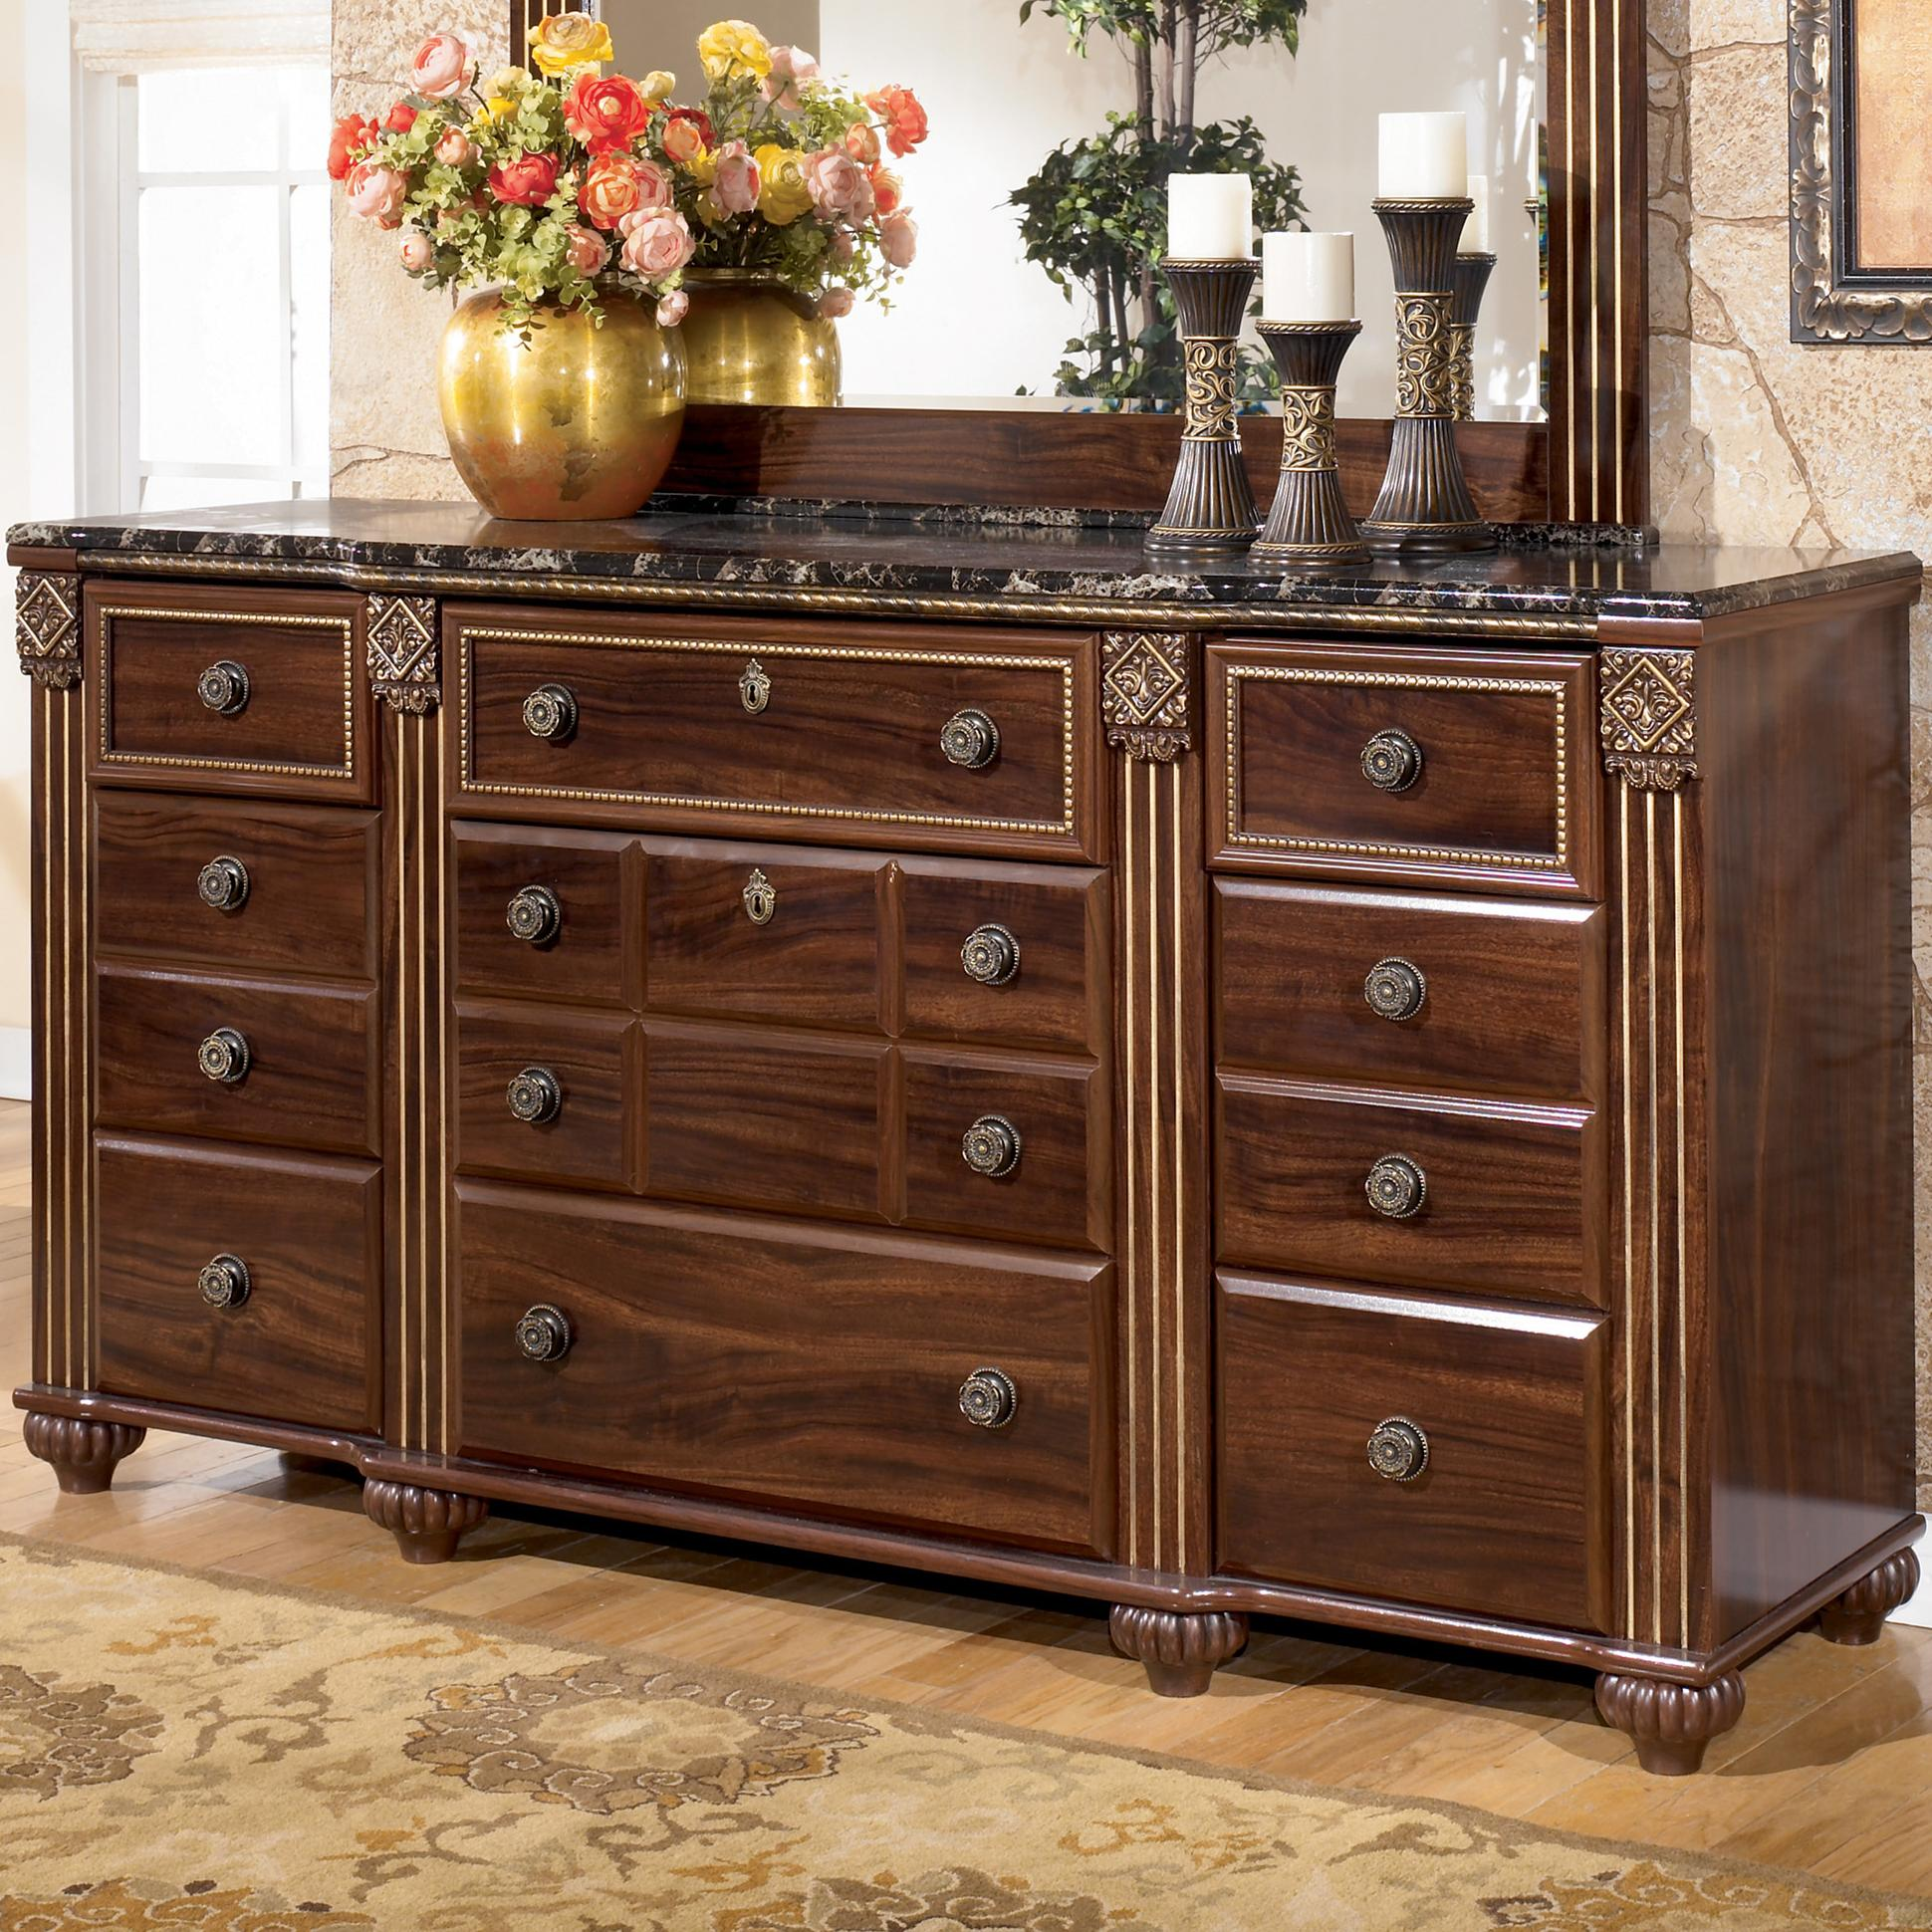 Signature Design By Ashley Gabriela B347 31 9 Drawer Traditional Dresser With Marbled Top Del